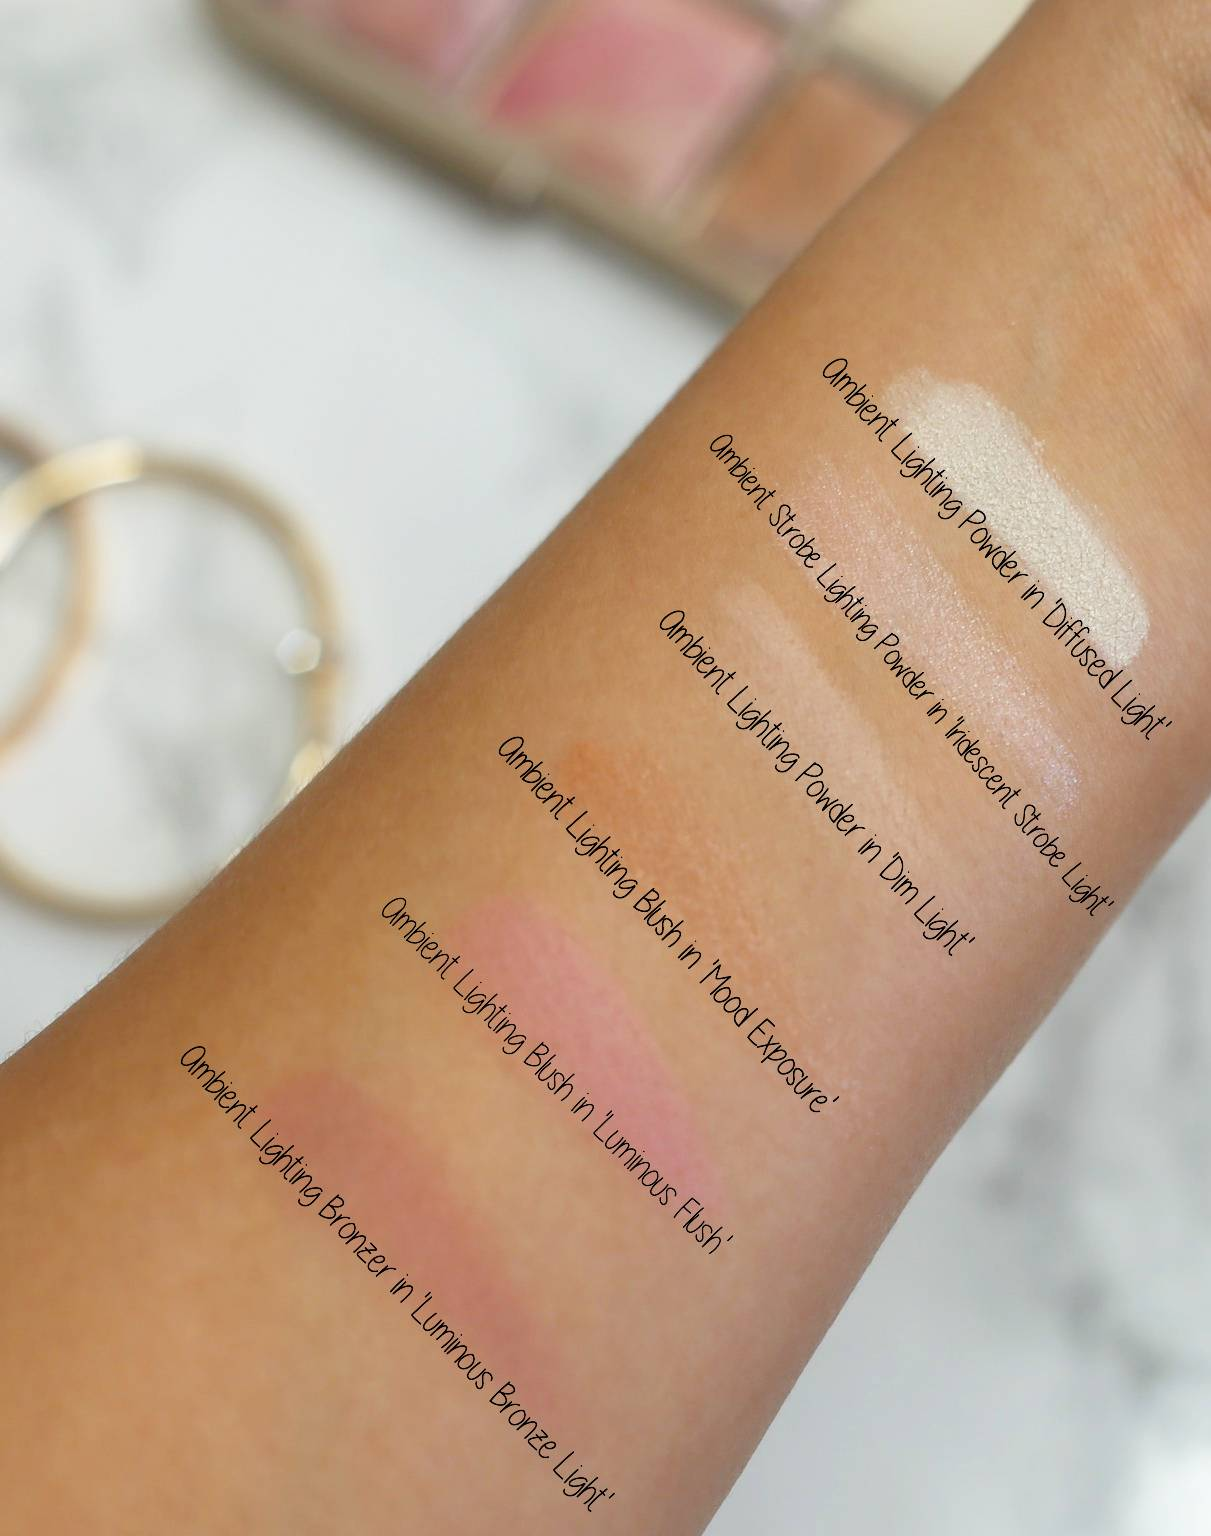 beauty-favourites-for-summer | Summer Beauty Must Haves by popular Orlando beauty blogger Mash Elle | Alexa Chung | hourglass makeup | favorite items for home